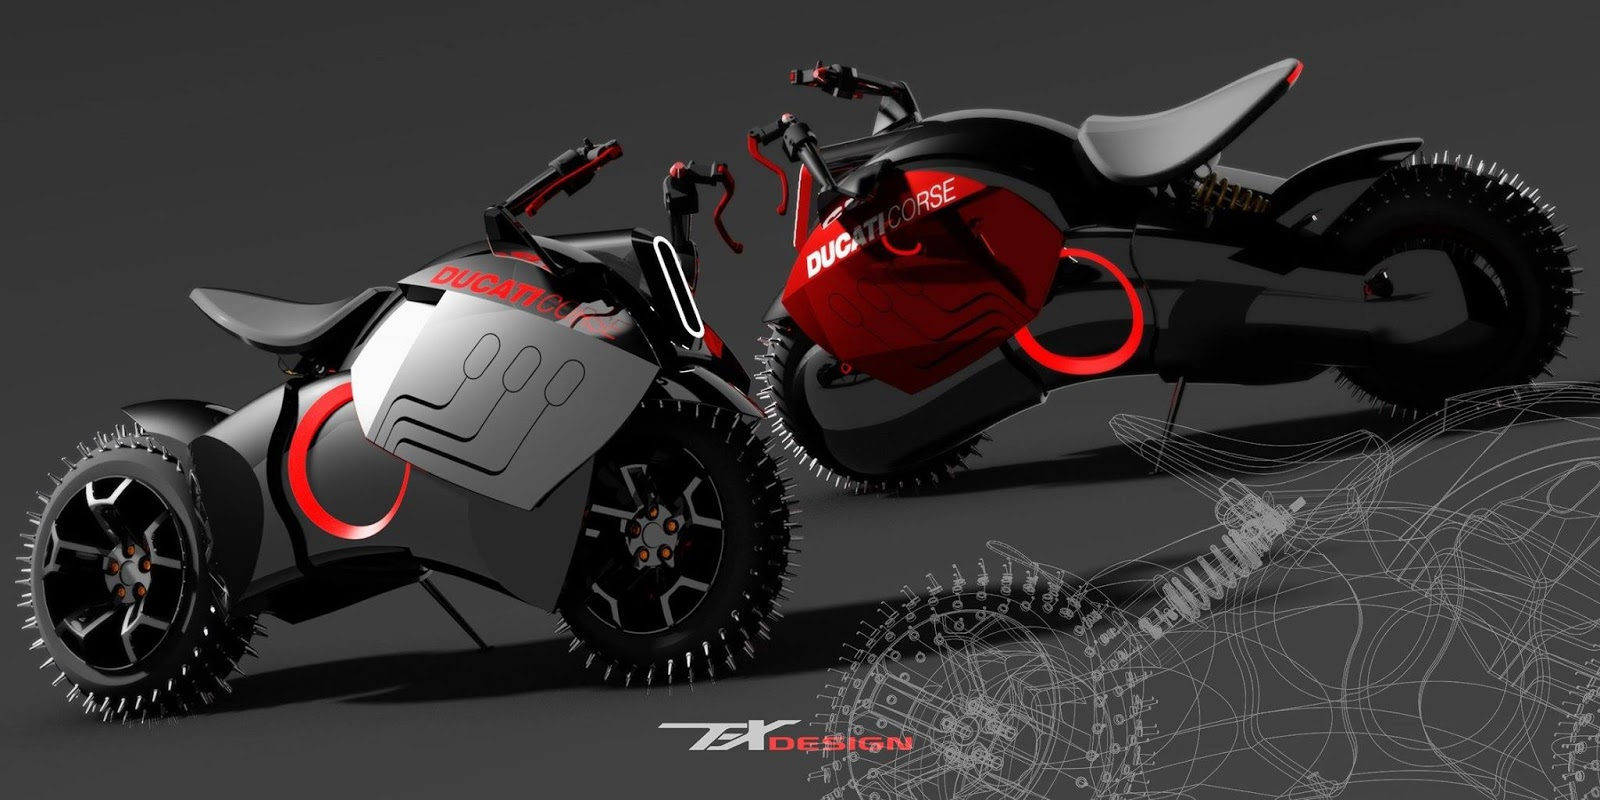 Rendering Image Of Ducati Electric Motorcycles By Paolo Tesio Picture From Http Bit Ly 1ych9ac